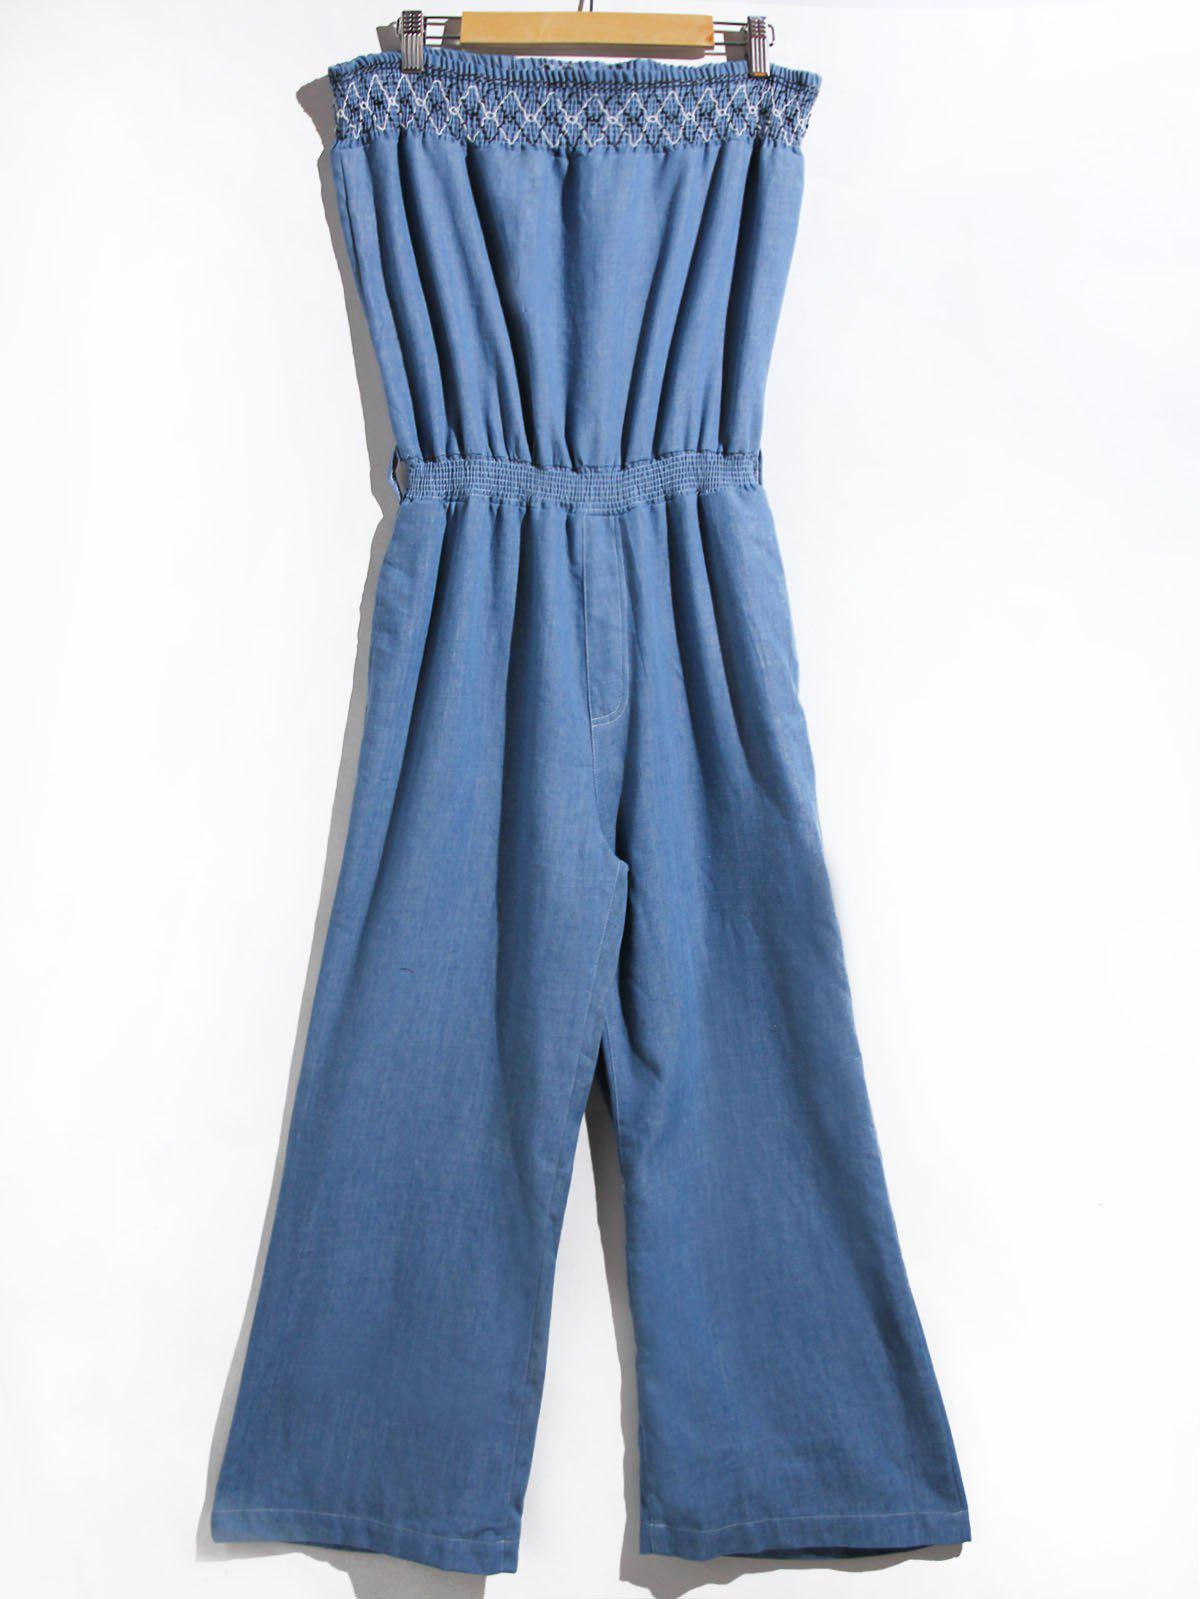 Women's Stylish Strapless Denim Jumpsuit DRESSFO